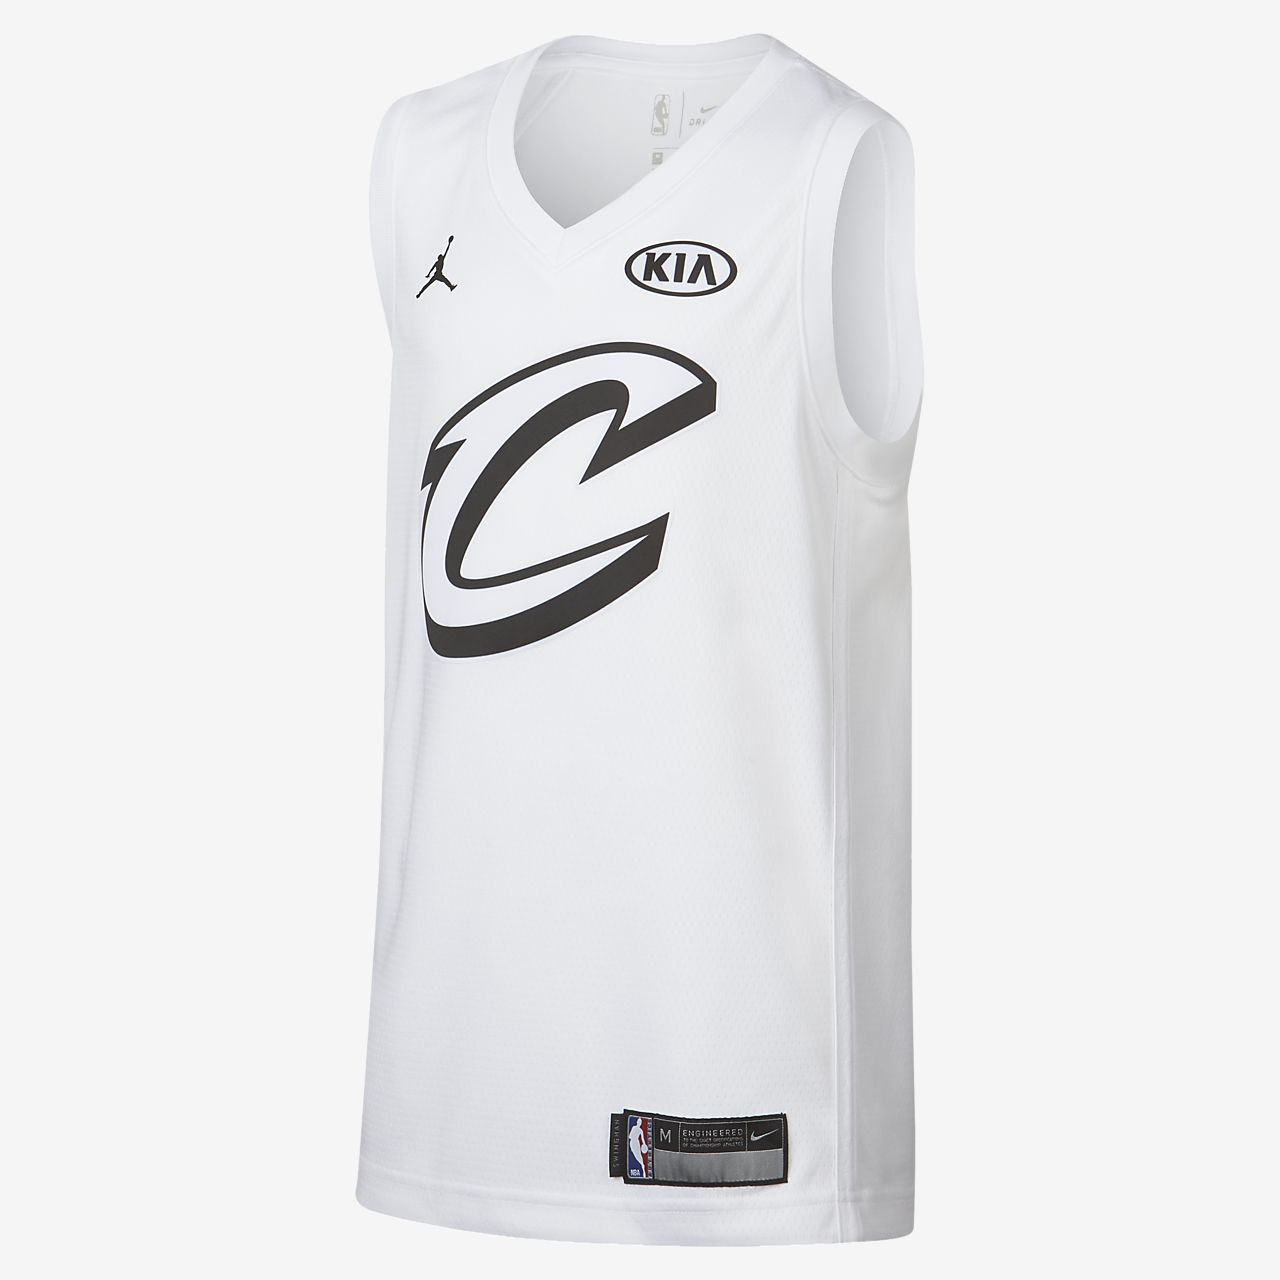 LeBron James All-Star Edition Swingman Jersey Jordan NBA Connected Trikot für ältere Kinder